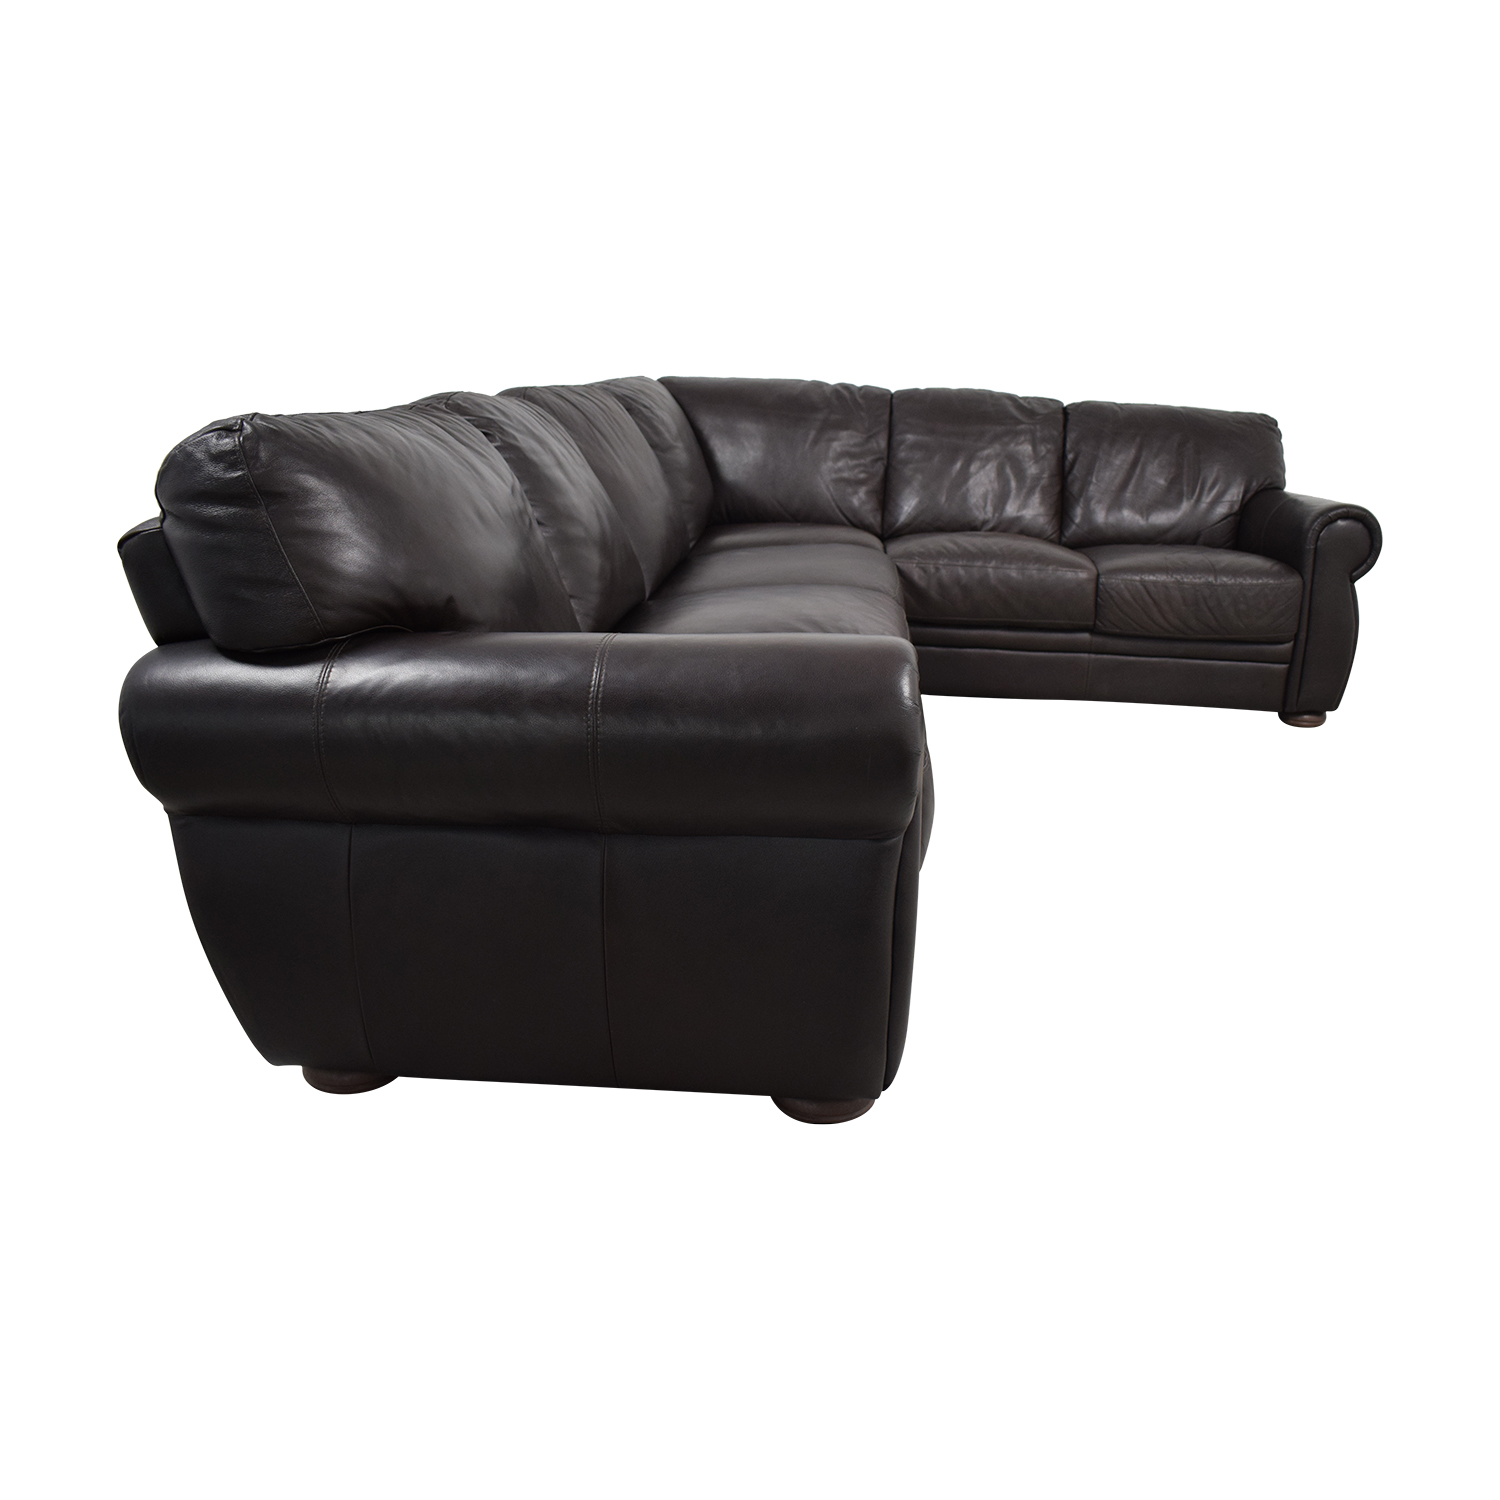 Chateau d'Ax Chateau D'Ax Marsala Brown L-Shaped Sectional dimensions